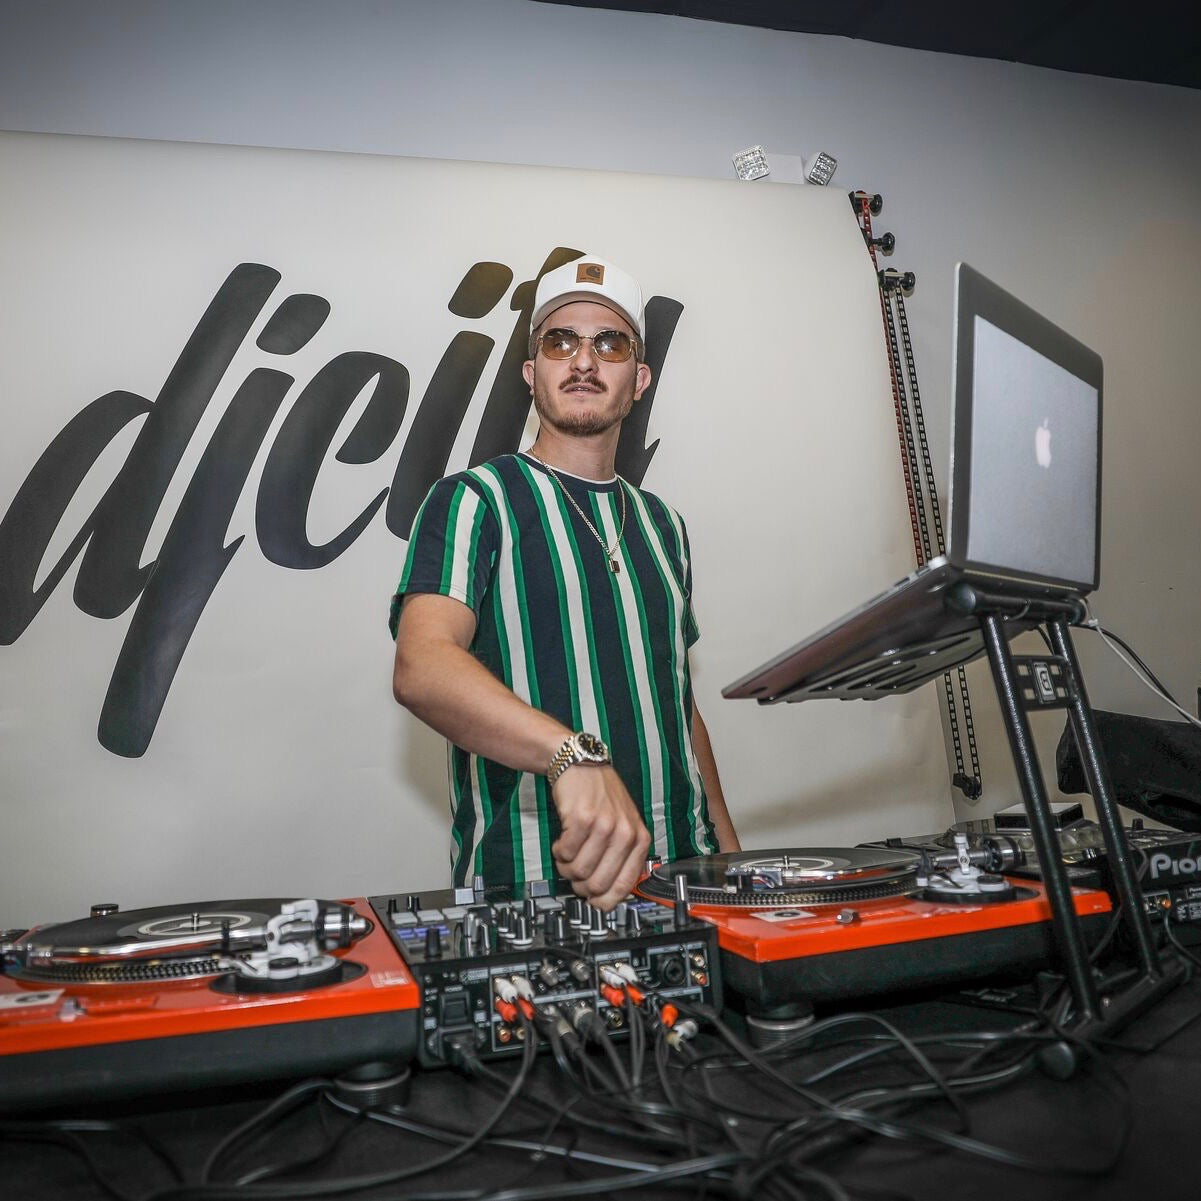 Flosstradamus Speaks On Move To Los Angeles & Needing State Of The Art Coffee In iEDM Interview